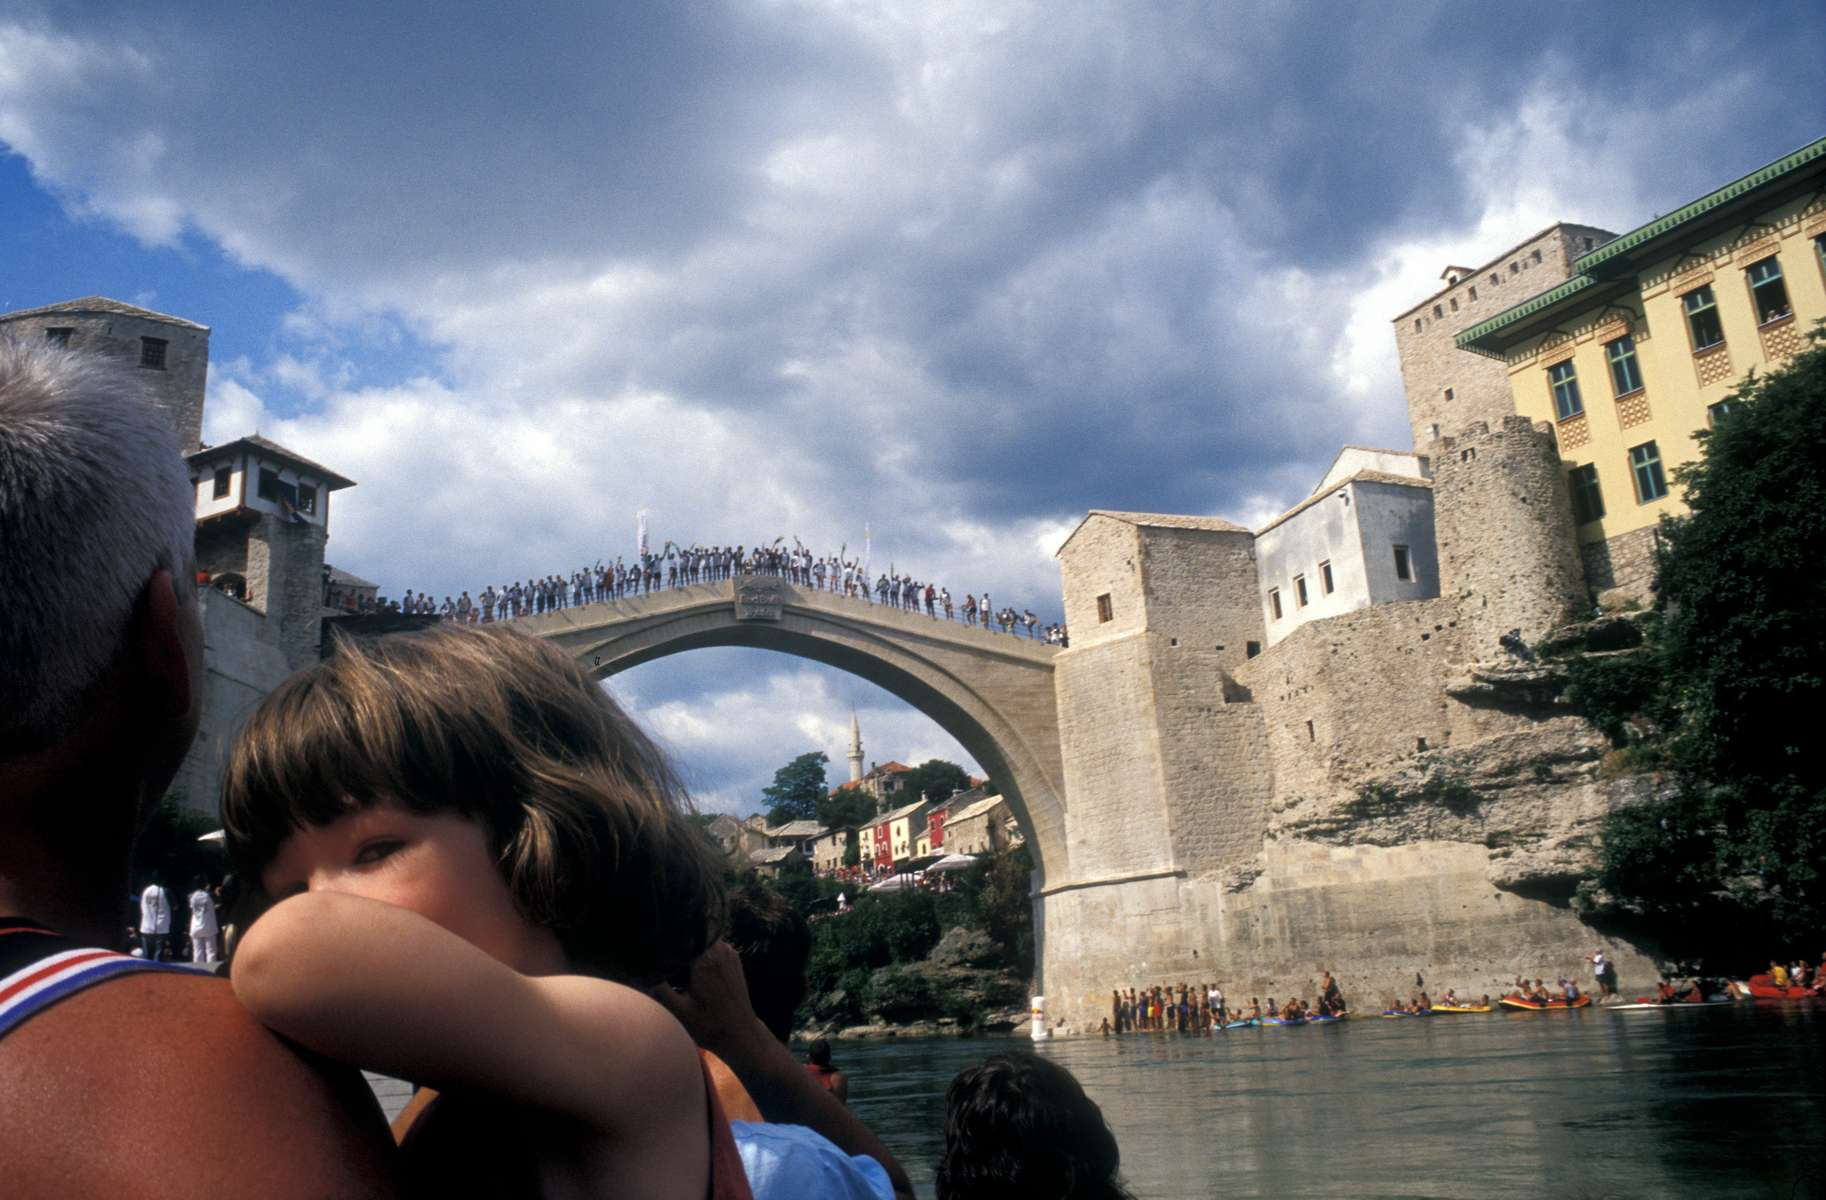 While crowds line the banks of the Neretva river, competitors line the top of the famed Mostar Bridge, ready to begin what locals say is the city\'s 448th annual jumping and diving contest. The competition was held just eight days after the newly rebuilt bridge was opened.